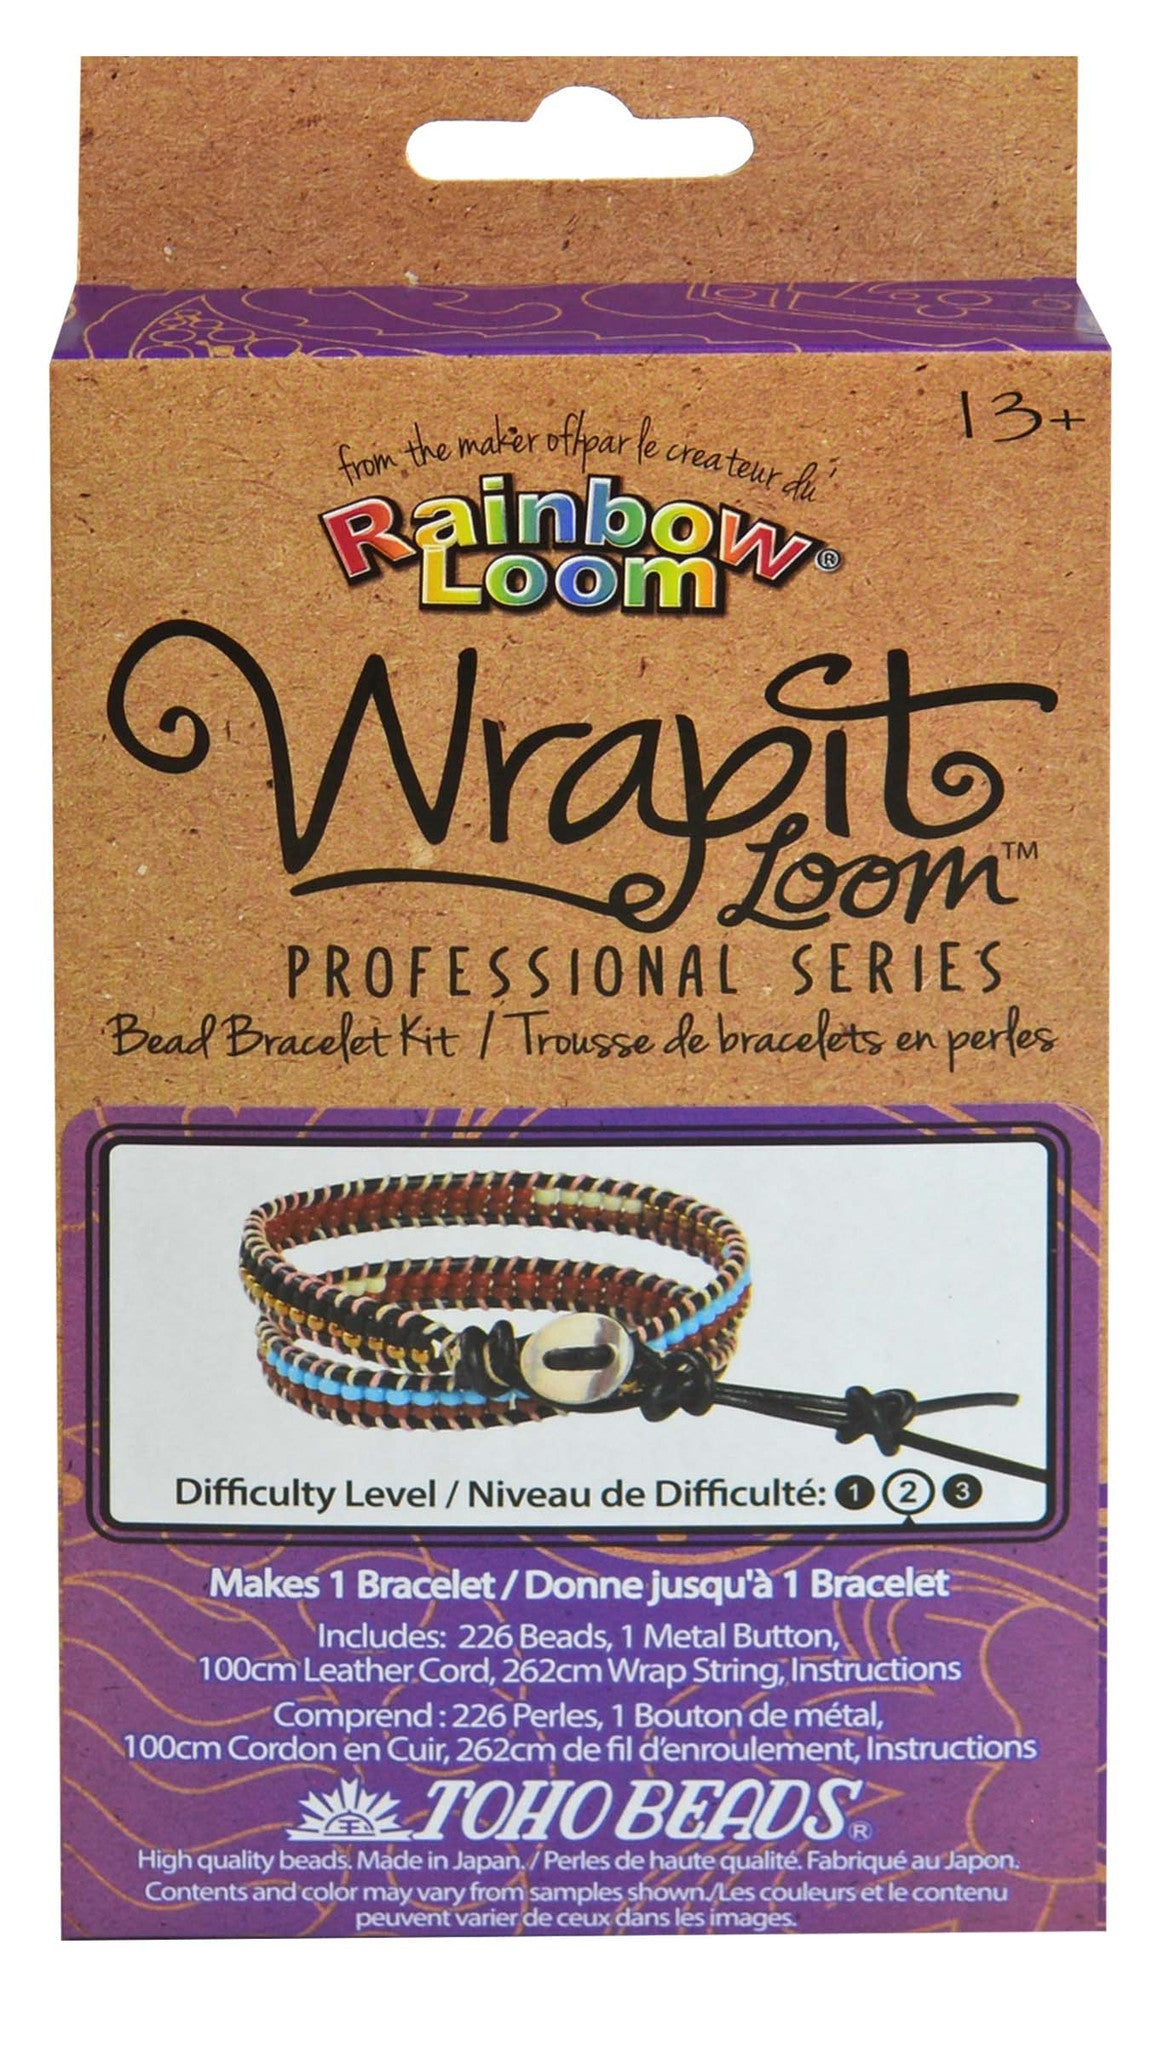 Wrap it Pro Kit - P4 - UK Manic Loomer